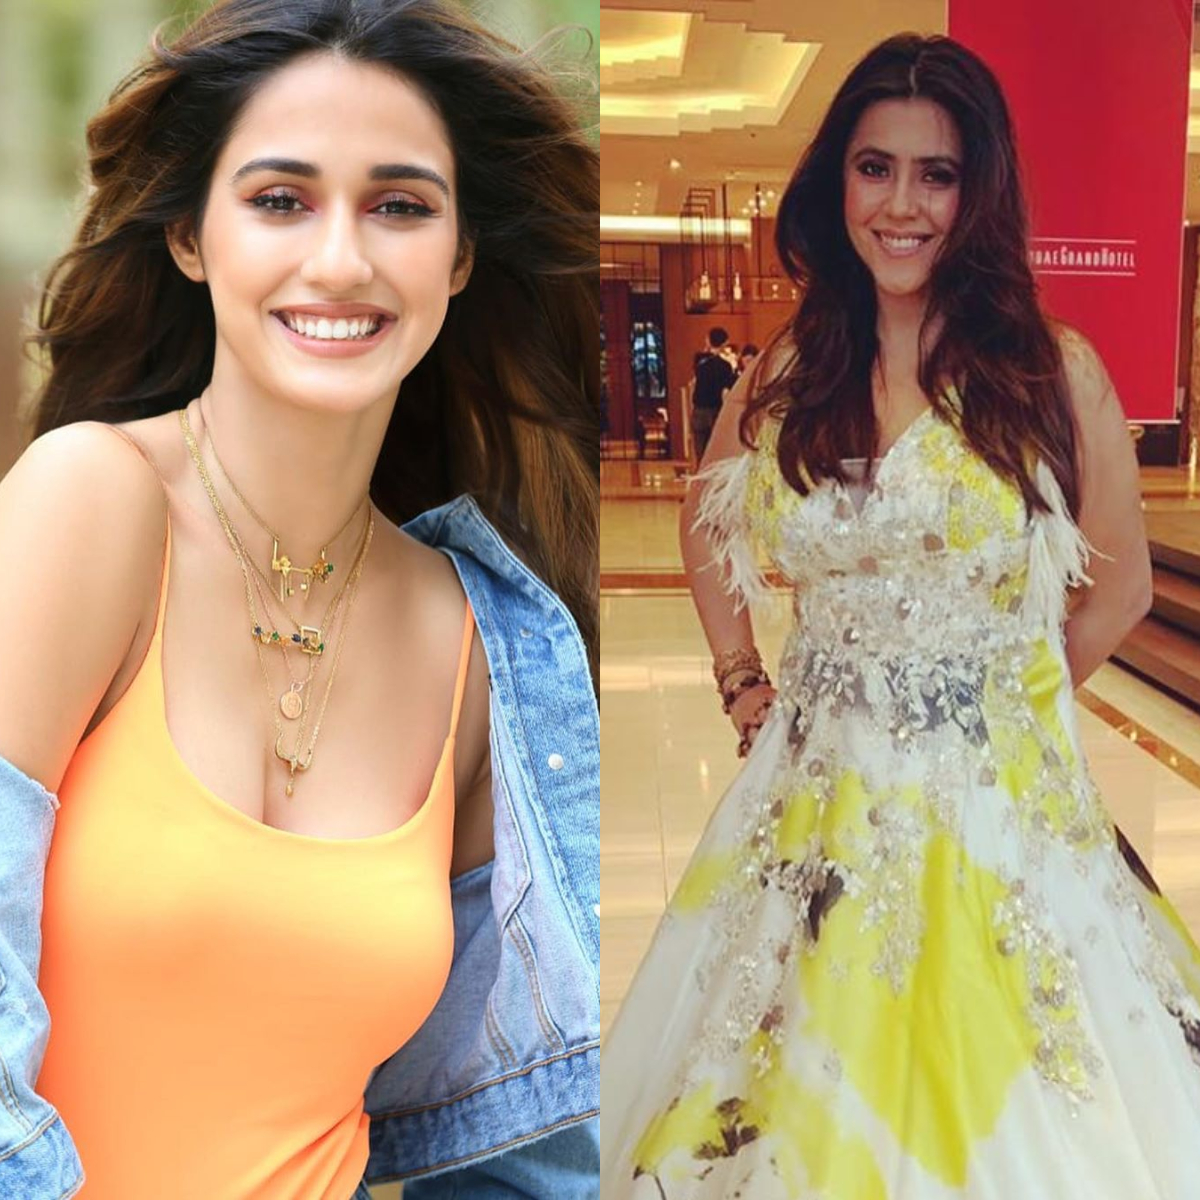 Disha Patani to collaborate with filmmaker Ekta Kapoor for her next project? Find out